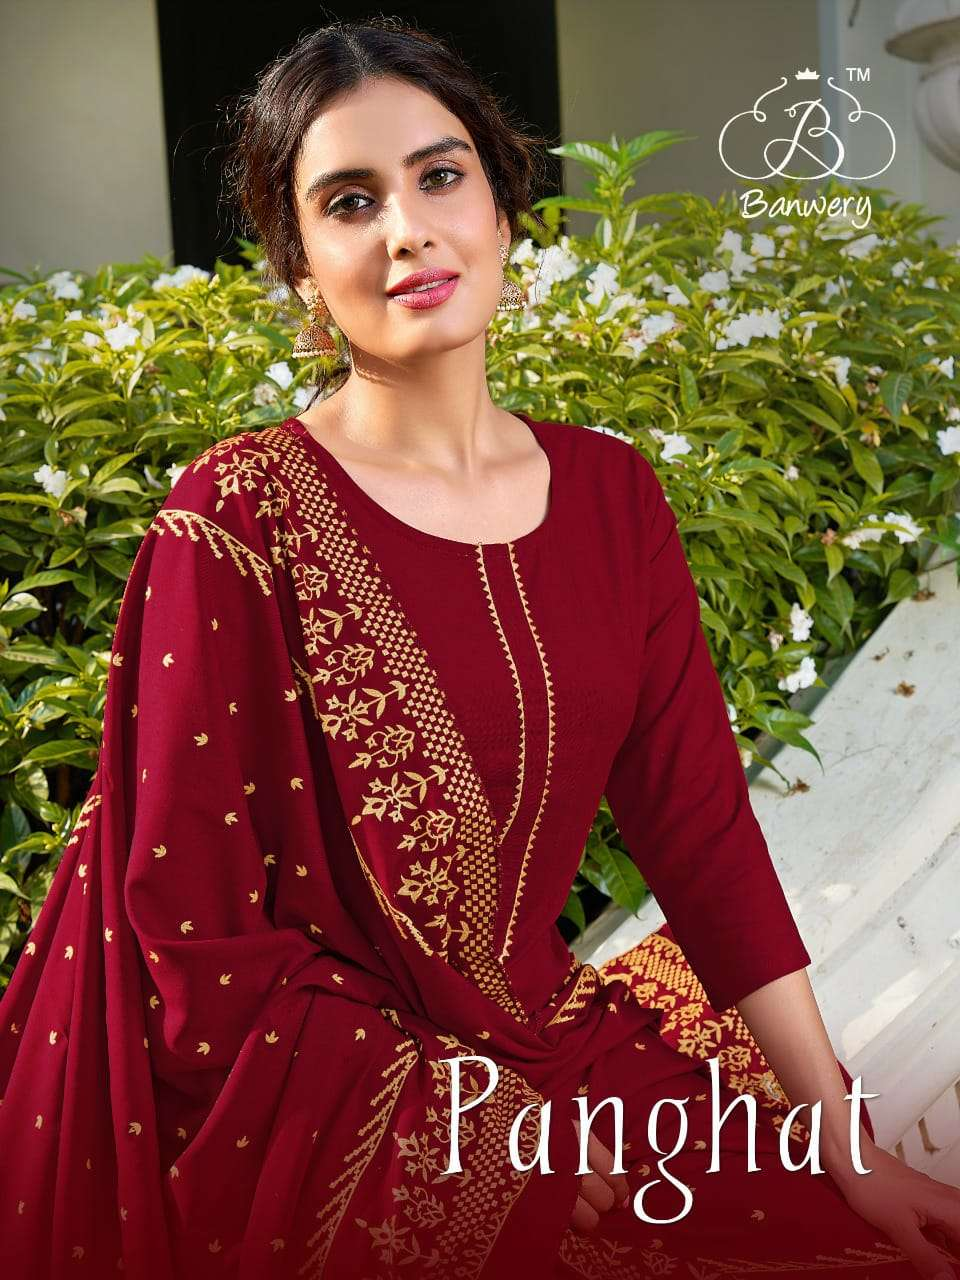 BANWERY PANGHAT DESIGNER RAYON FOIL PRINTED READYMADE PARTYWEAR SUITS WHOLESALE